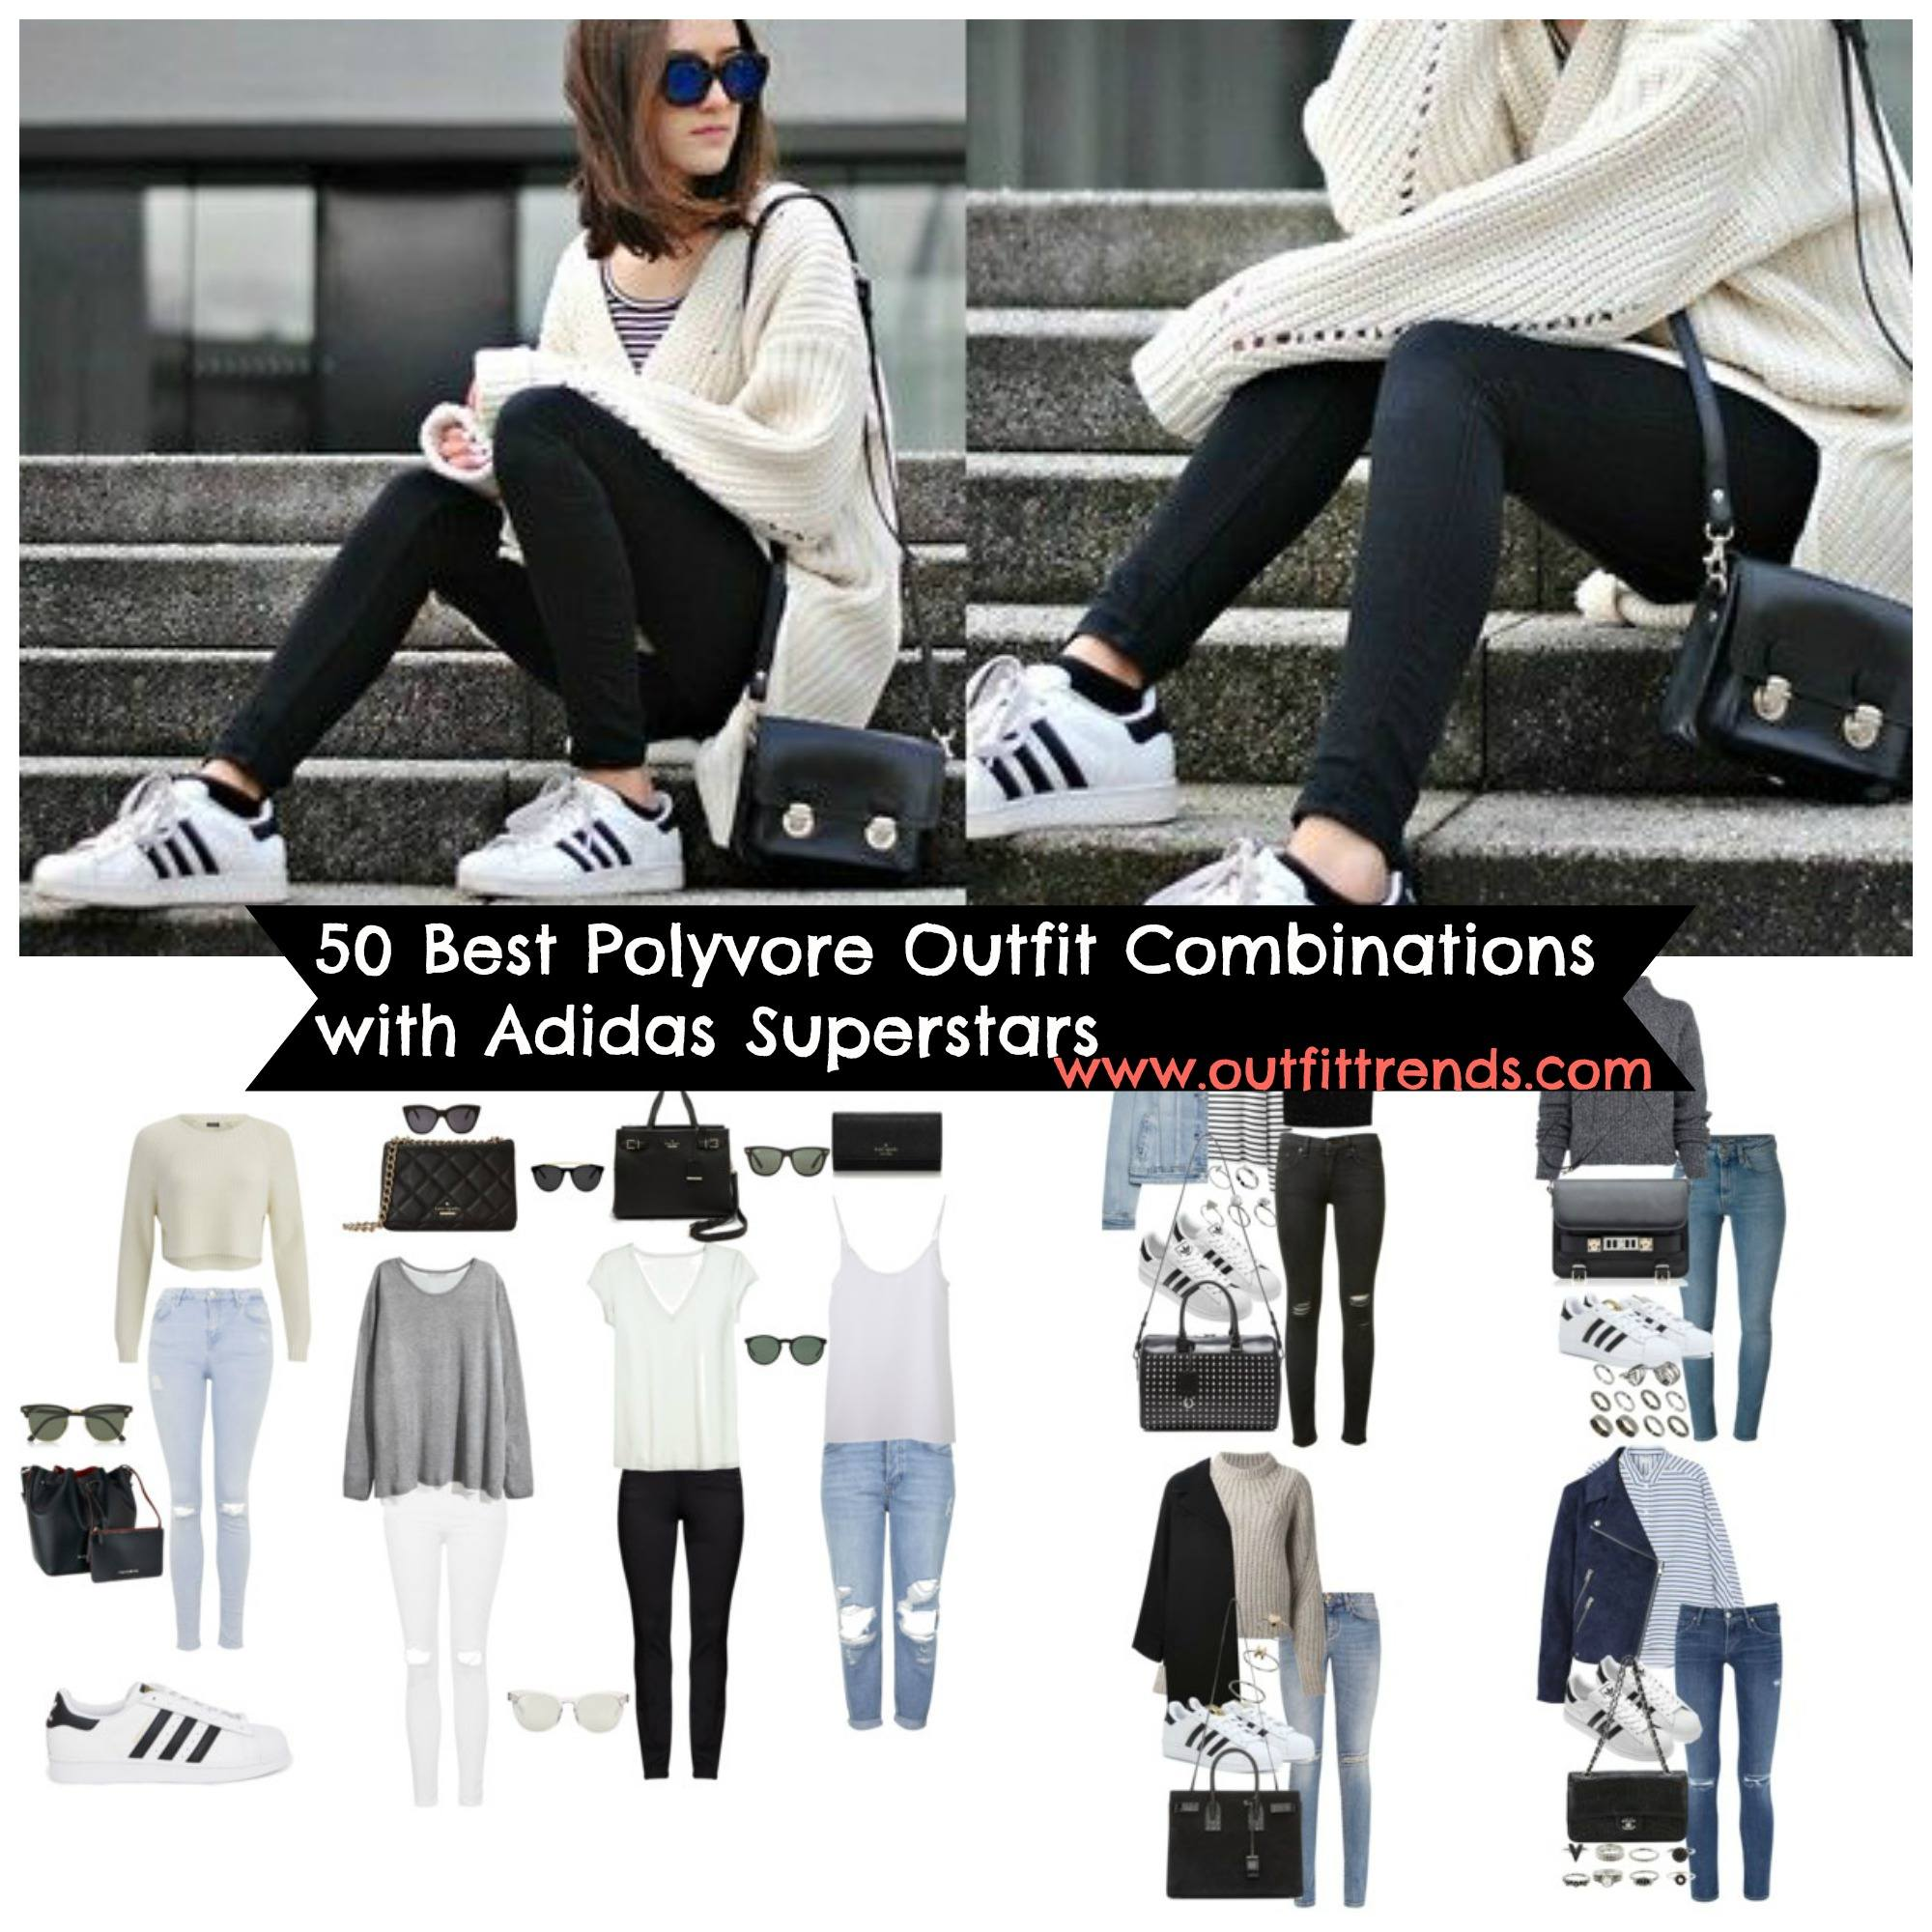 8322deb9890 netherlands 50 best polyvore outfits with adidas superstars for girls to  copy 29392 bff1a